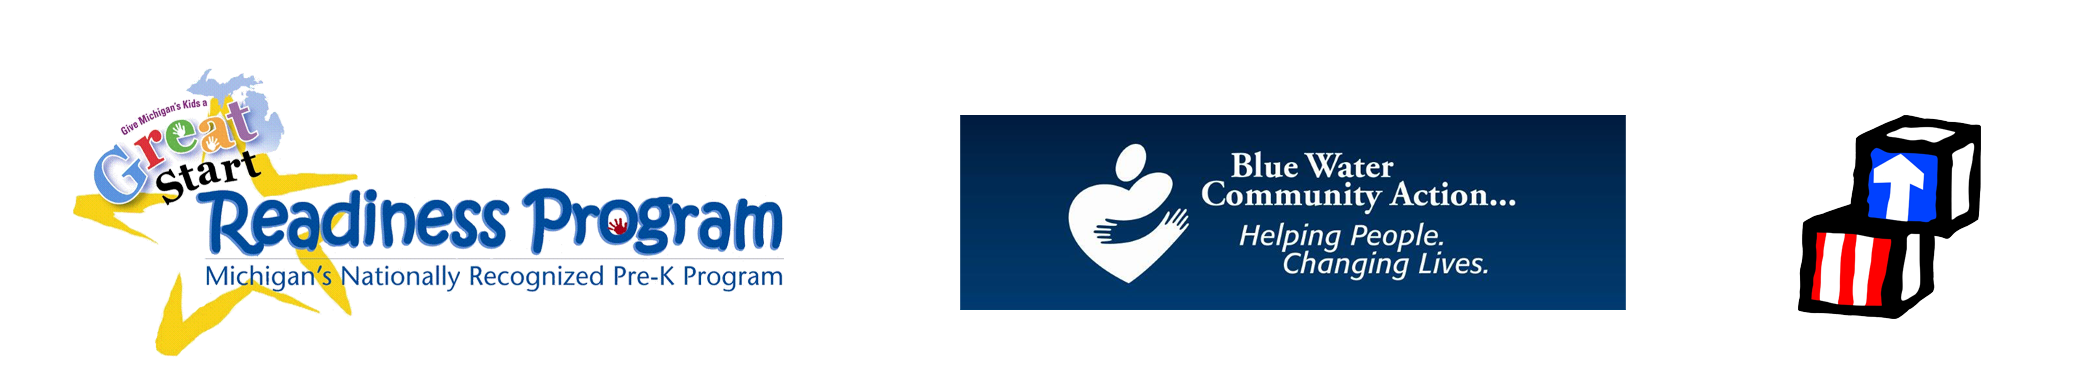 Blue Water Community Action's Logo